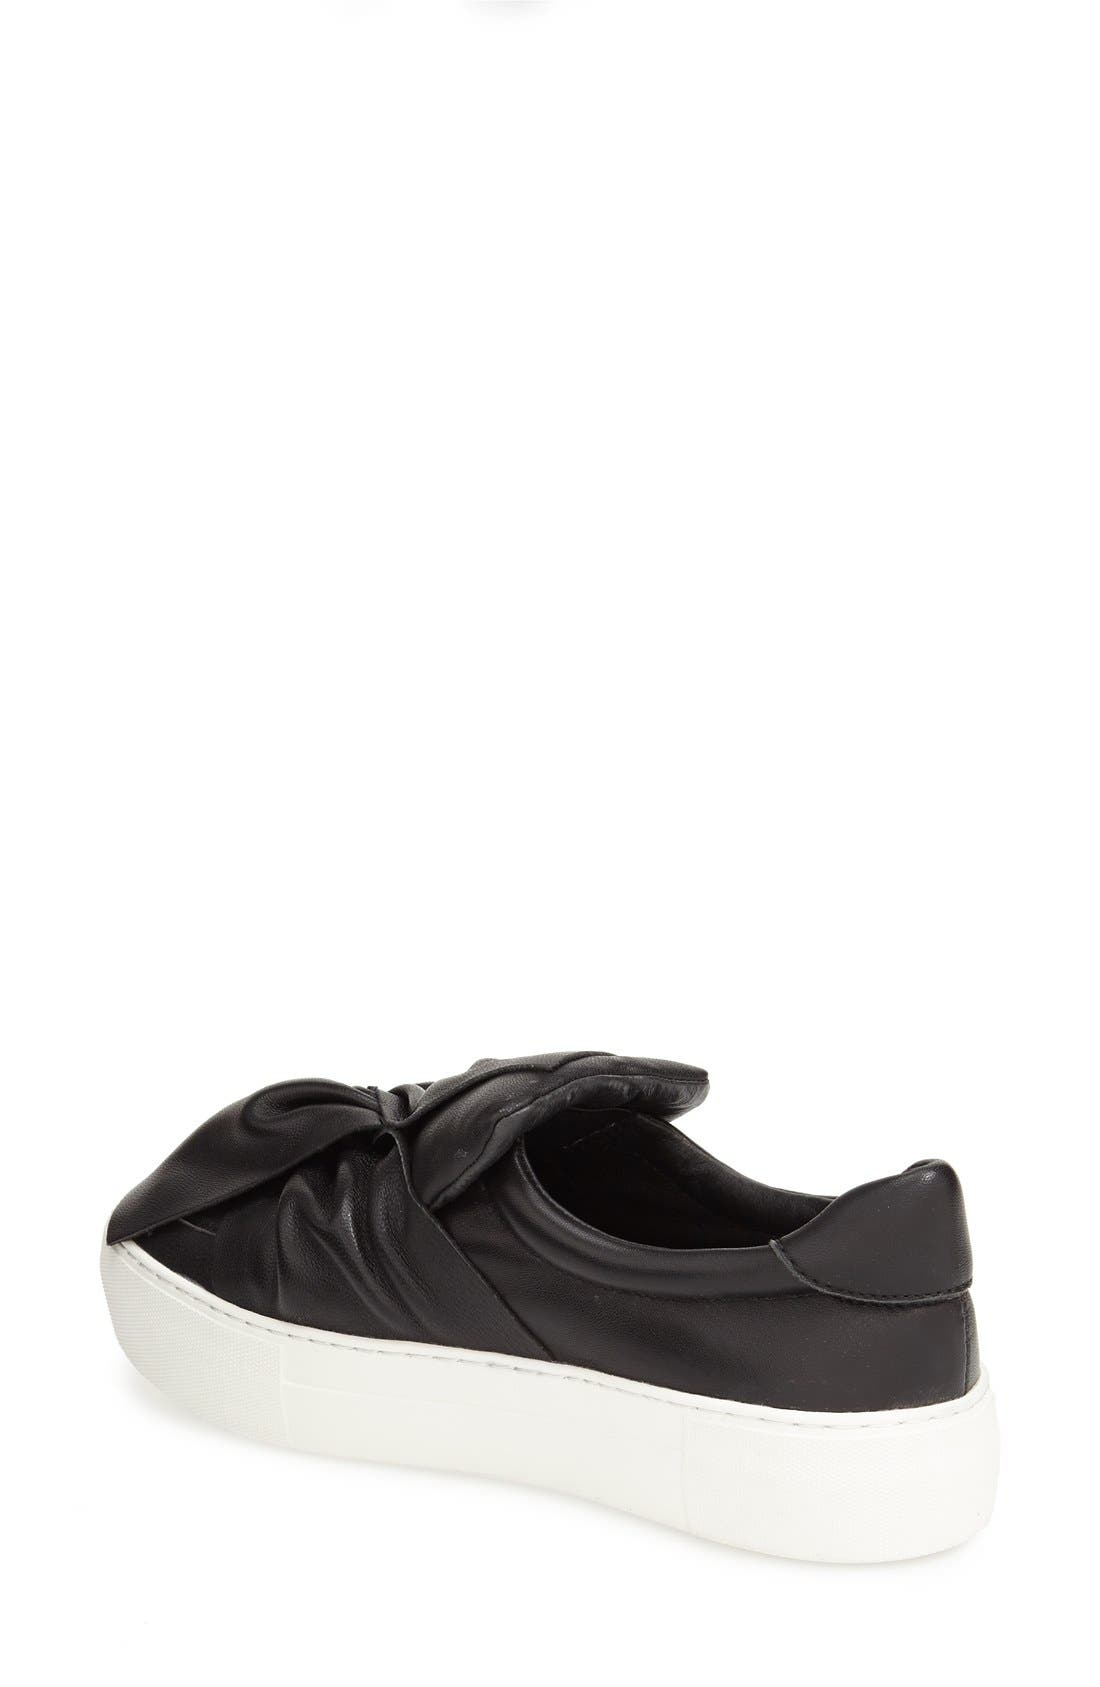 JSLIDES, 'Annabelle' Platform Sneaker, Alternate thumbnail 2, color, 015